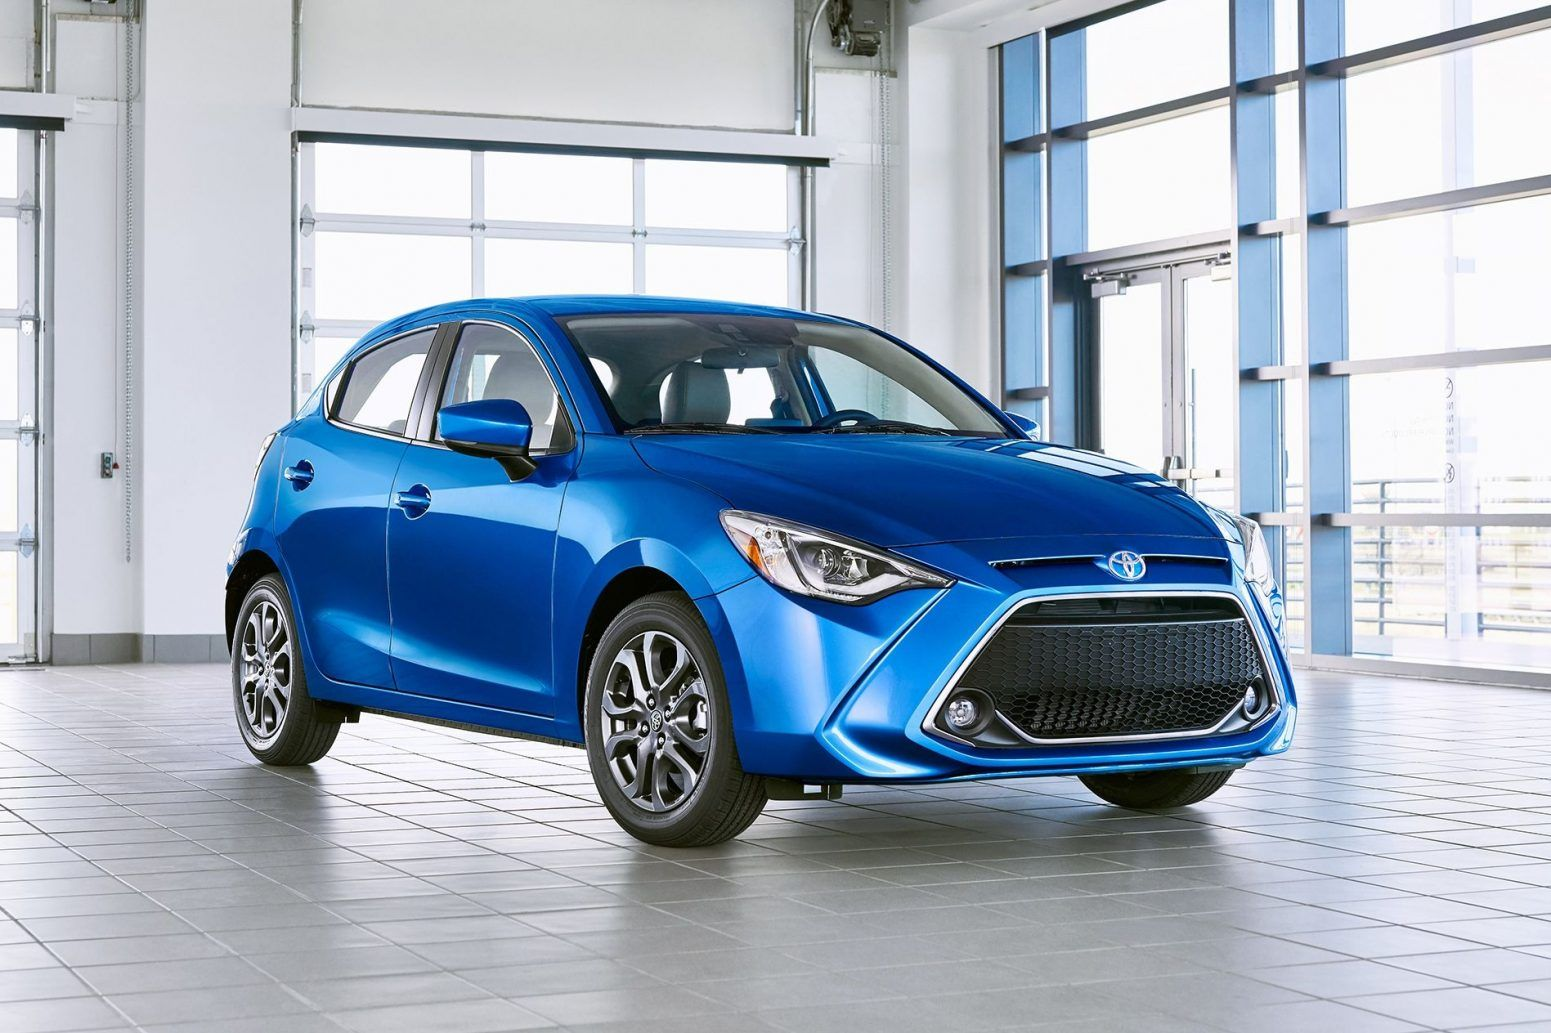 The New 2020 Toyota Yaris Has Actually Been Revealed For In The Year And This Time Ought To Bring Some Little Upgrades Those Will Main Hatchback Toyota Yaris